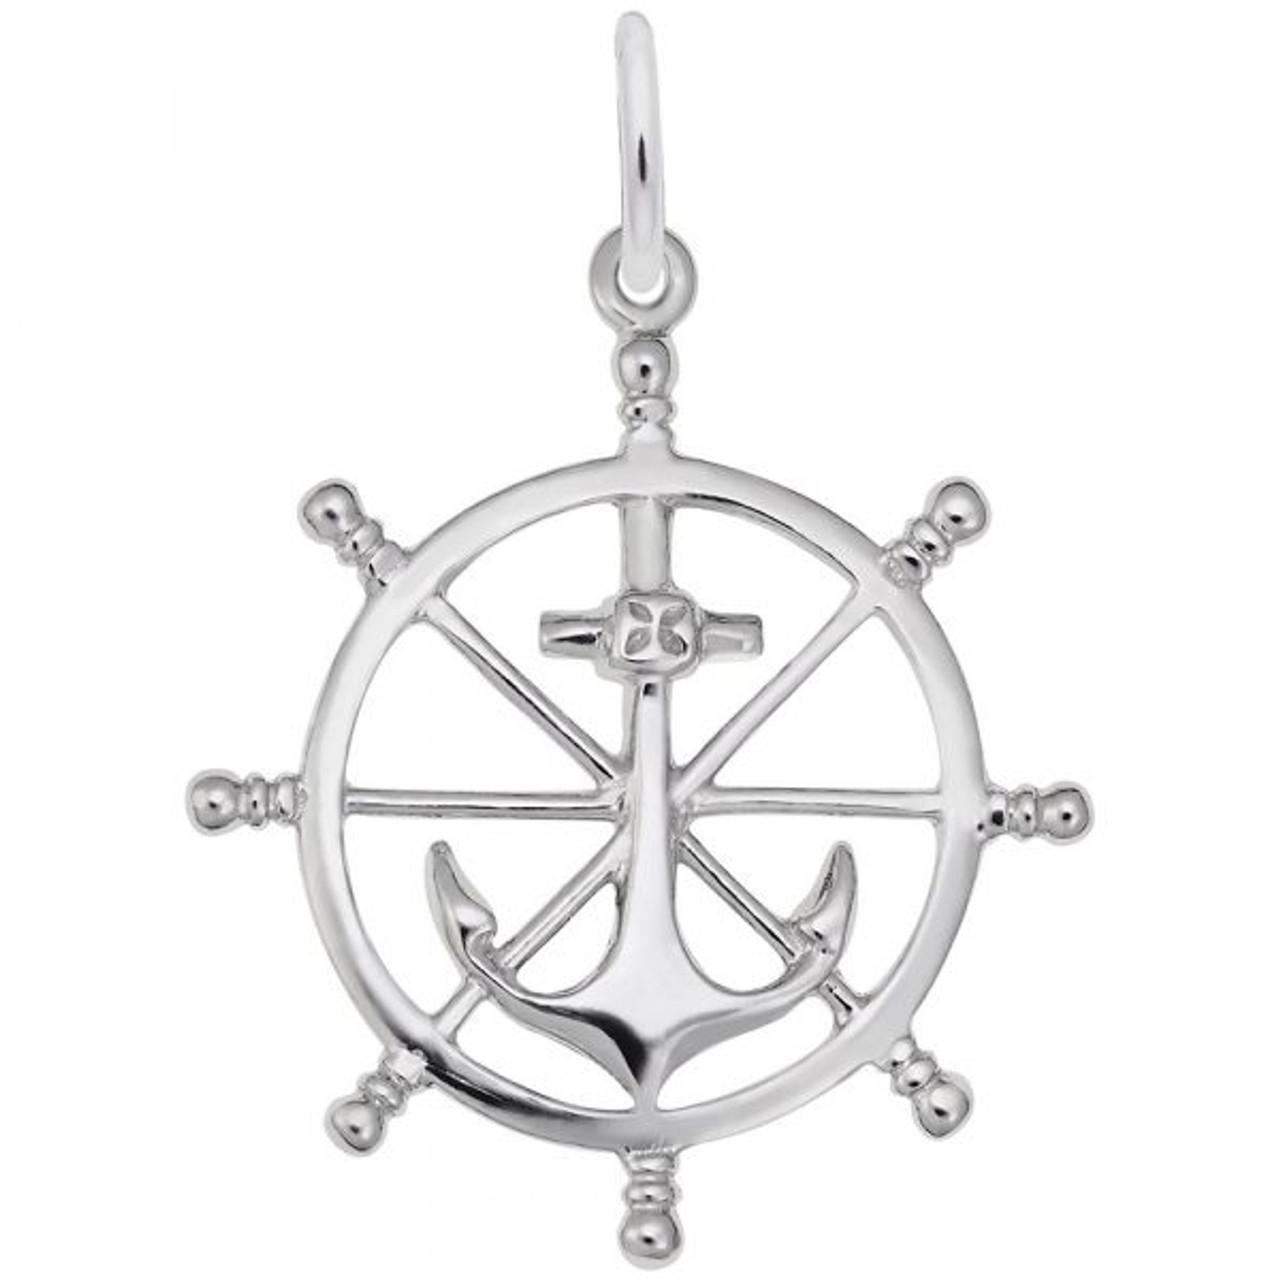 Anchor and Ship Wheel Charm - Sterling Silver and 14k White Gold